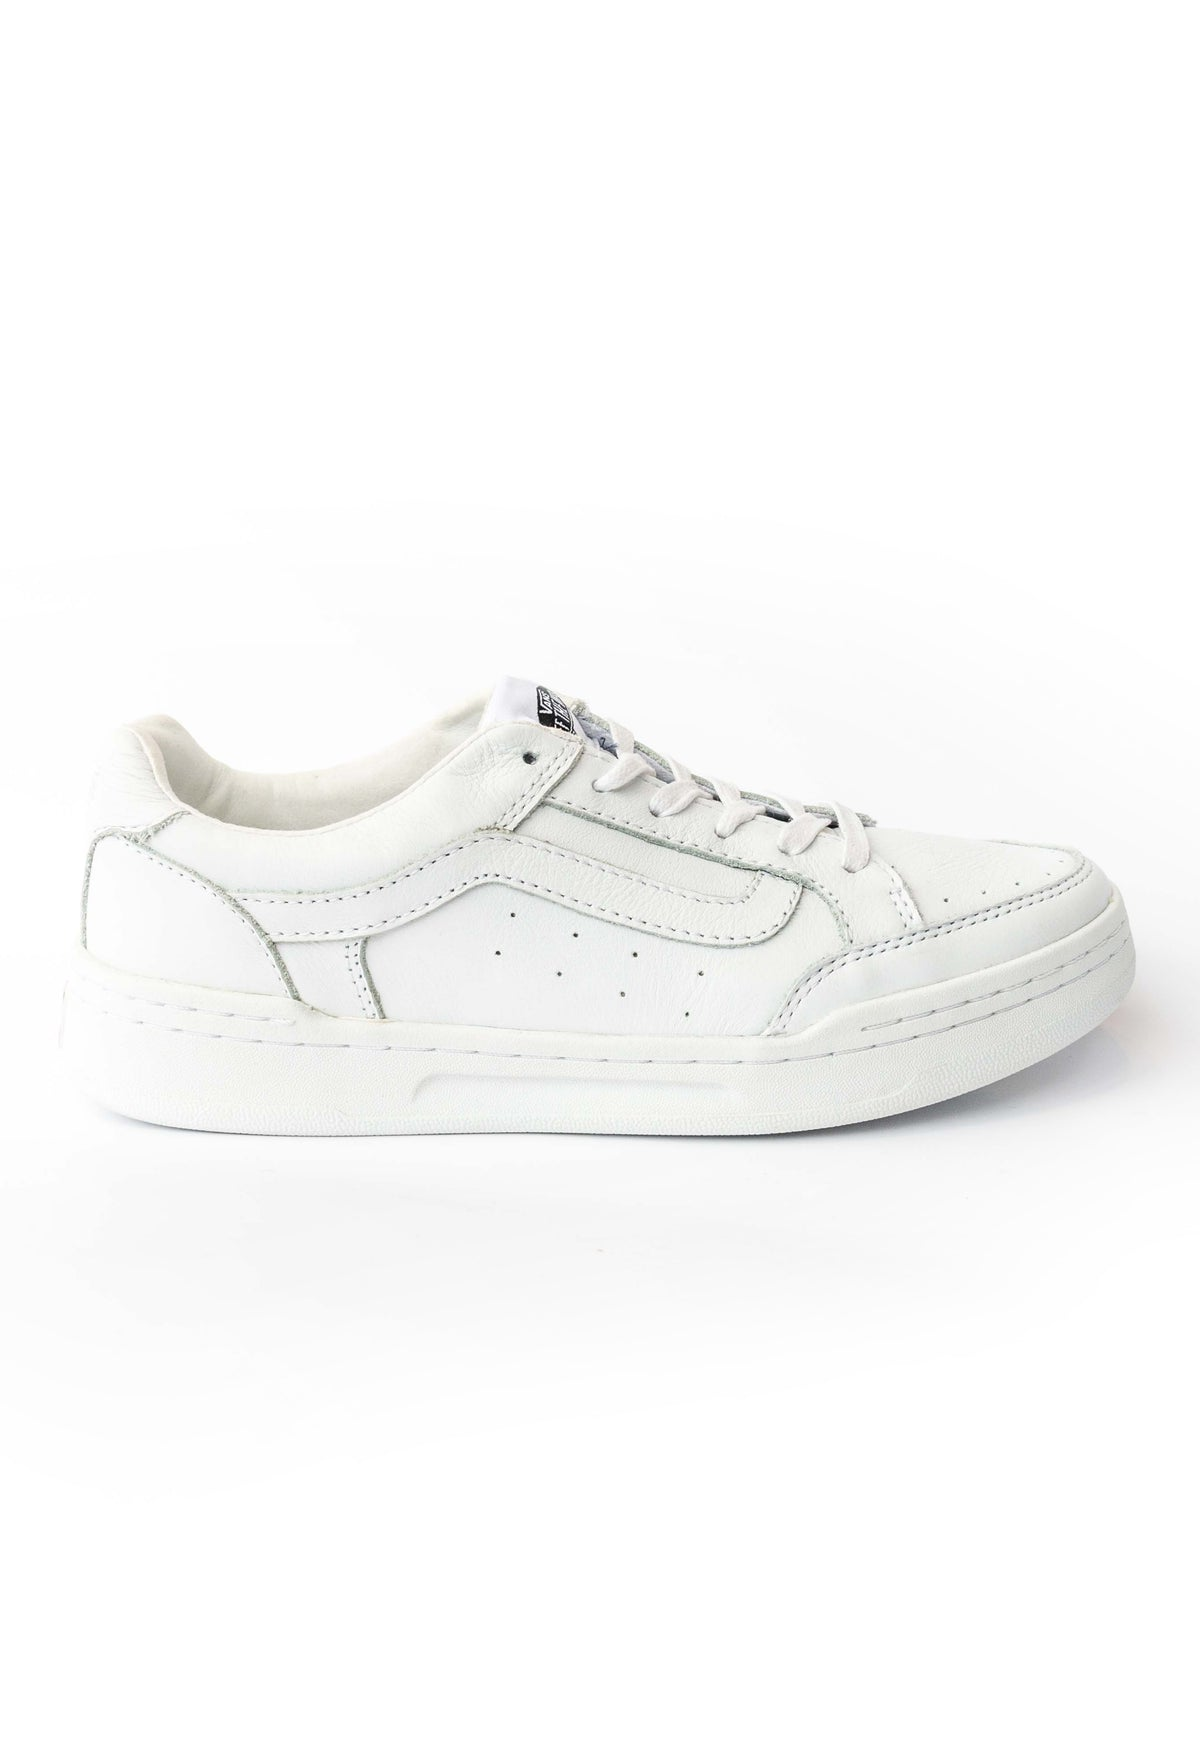 Highland White Leather Sneaker Vans Stockists New Zealand Buy Online Vans Skate Shoes Street Lace up Sneakers